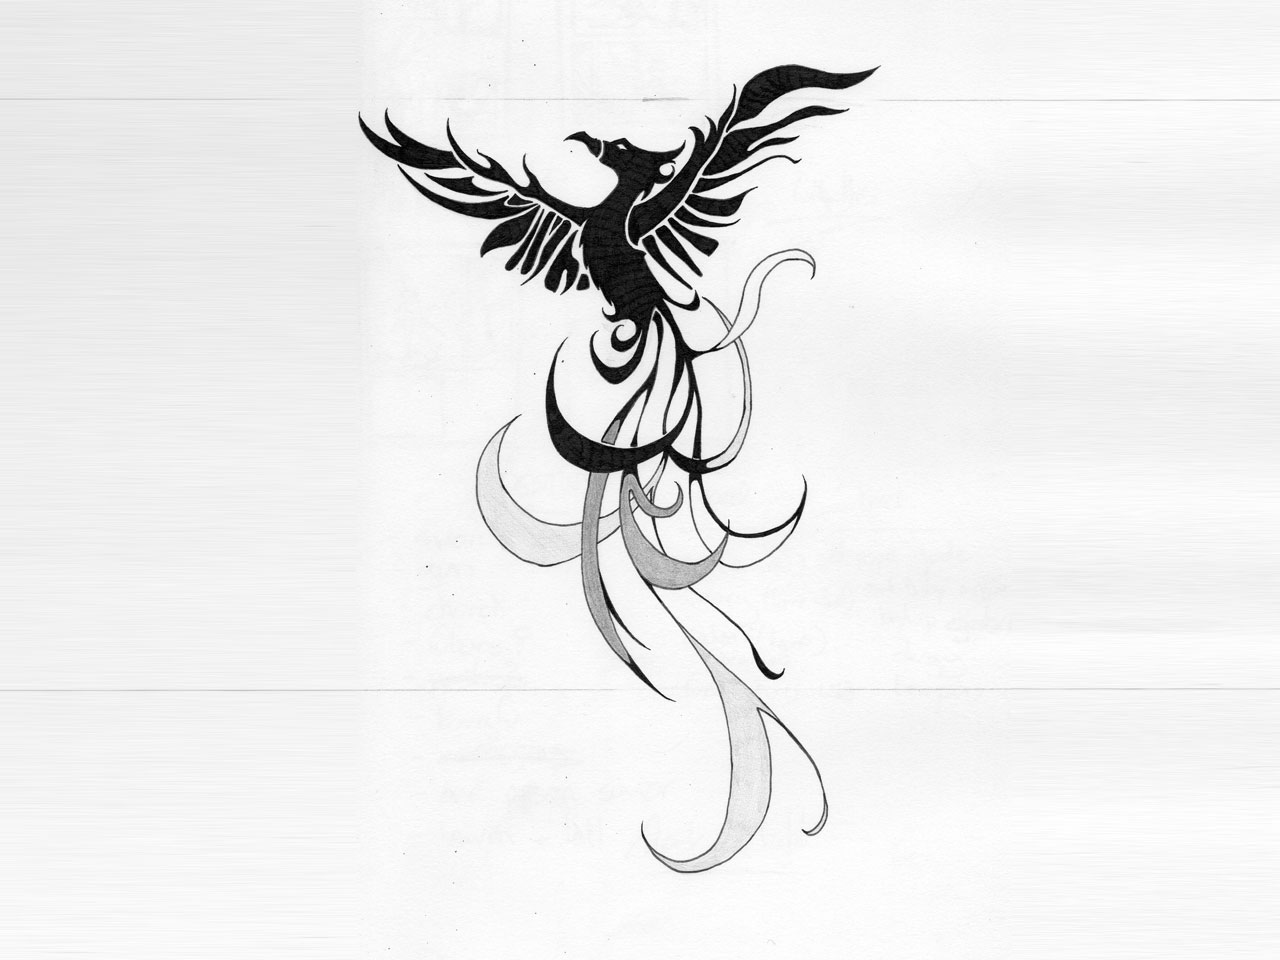 Small Phoenix Bird Tattoo Designs